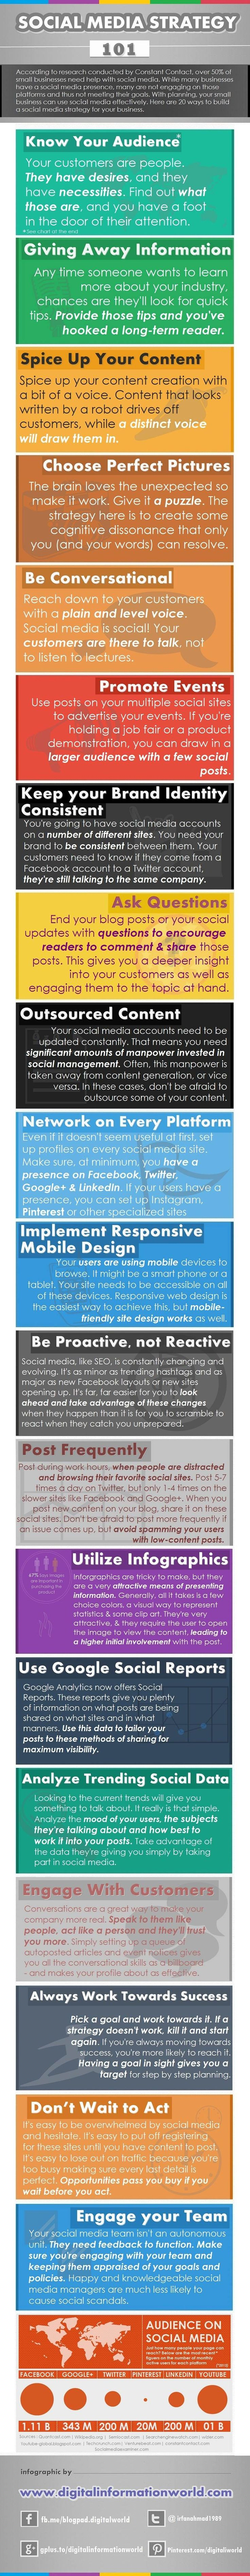 20 Social Media Strategies #Infographic - http://www.boxile.net/digital-marketing-services.php